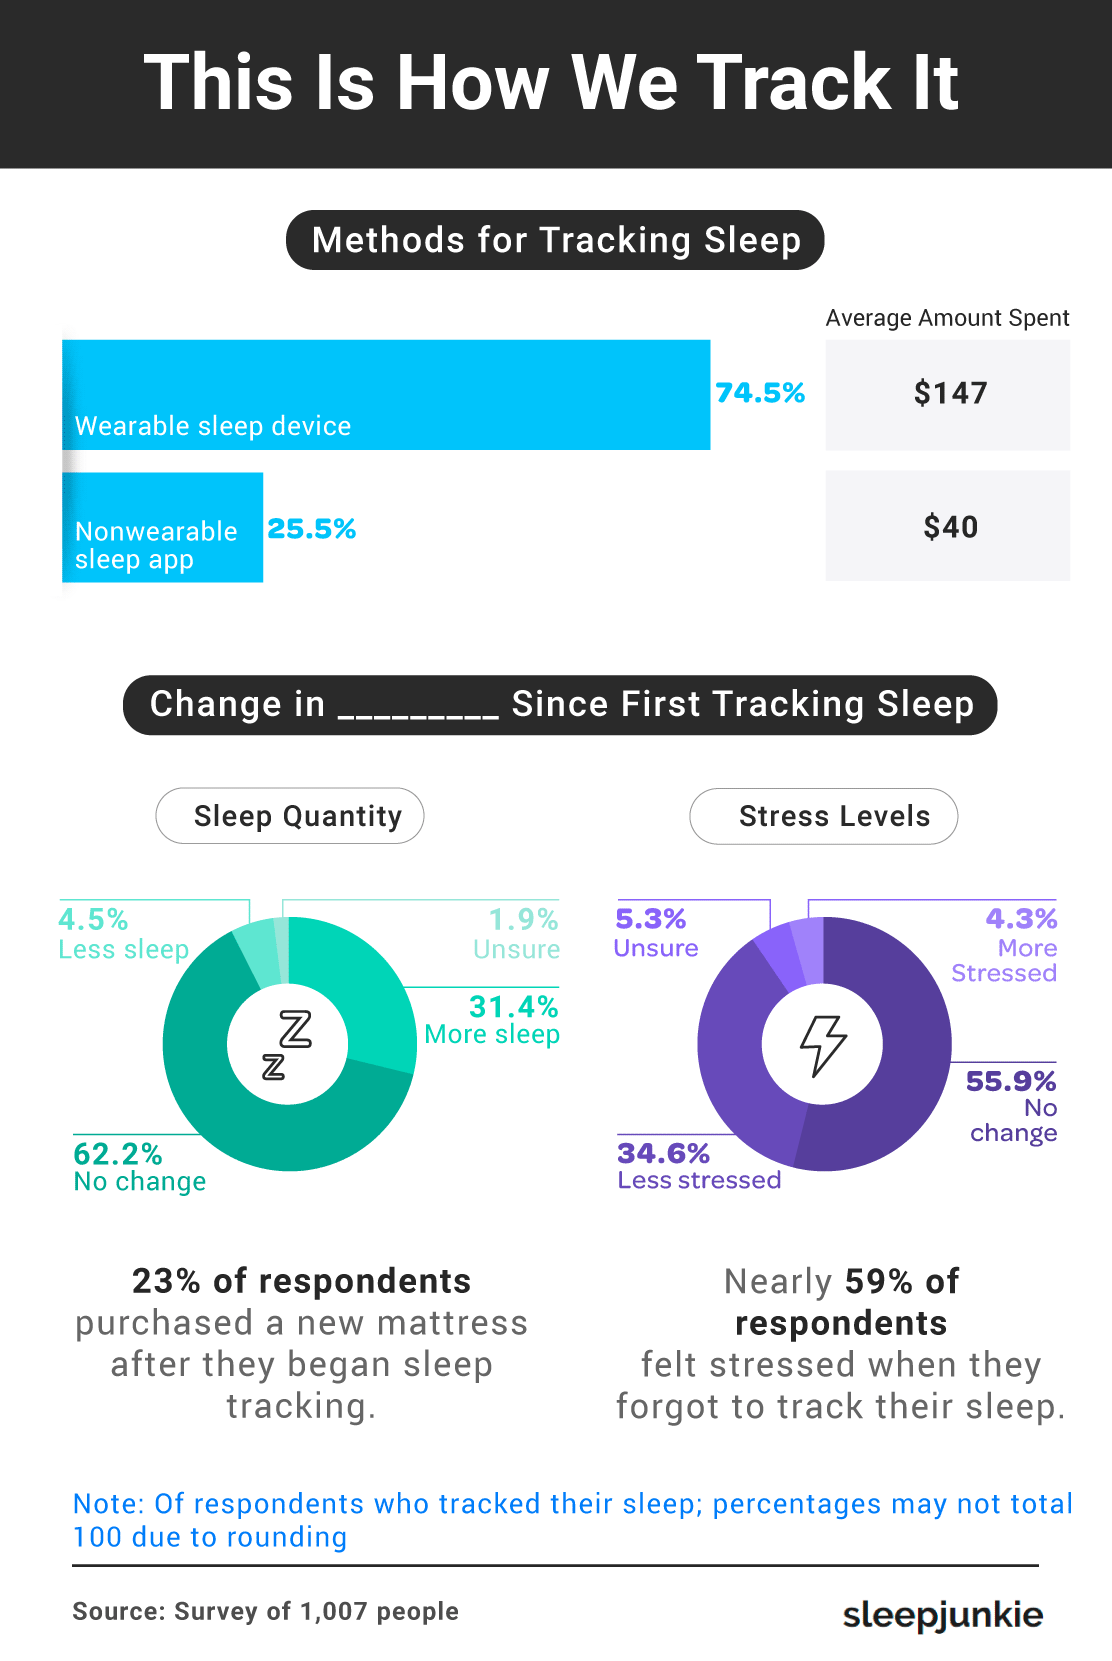 Sleep Tracking Methods